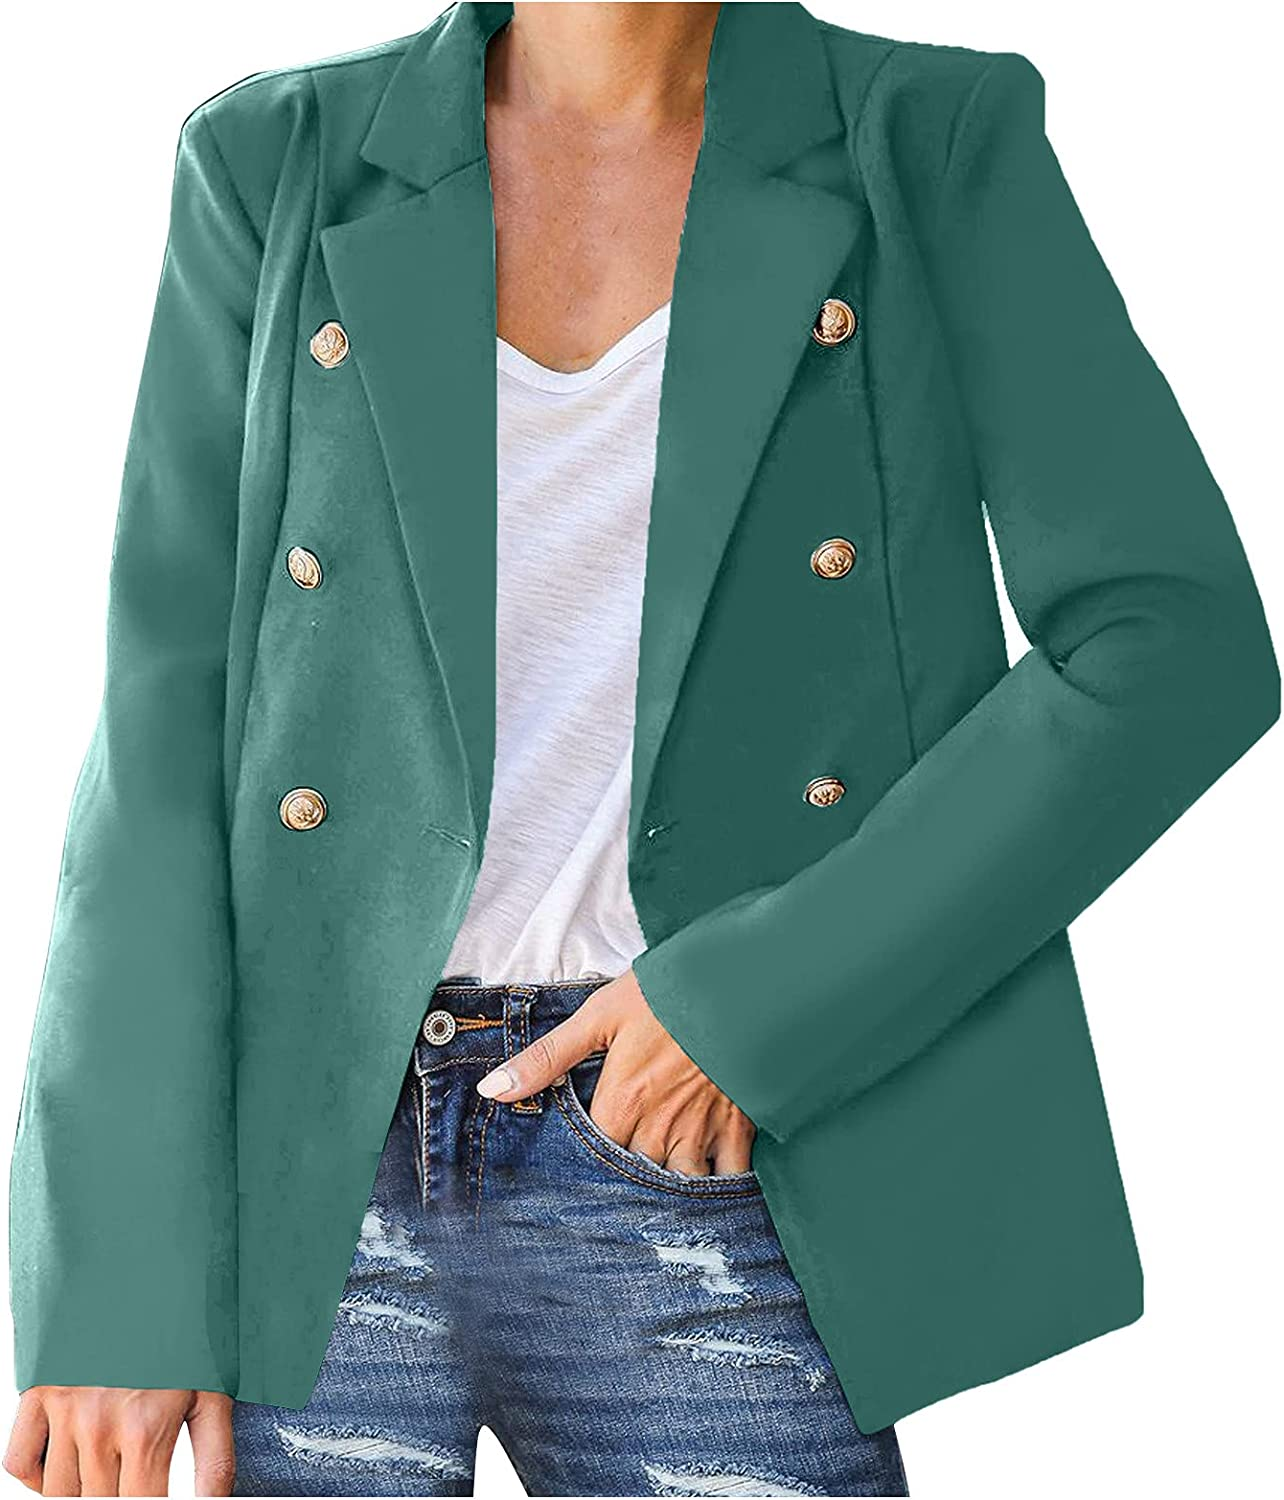 WUMAWEI cheap Women's Casual Lapel Button Blazer Jacket New mail order Color Su Solid